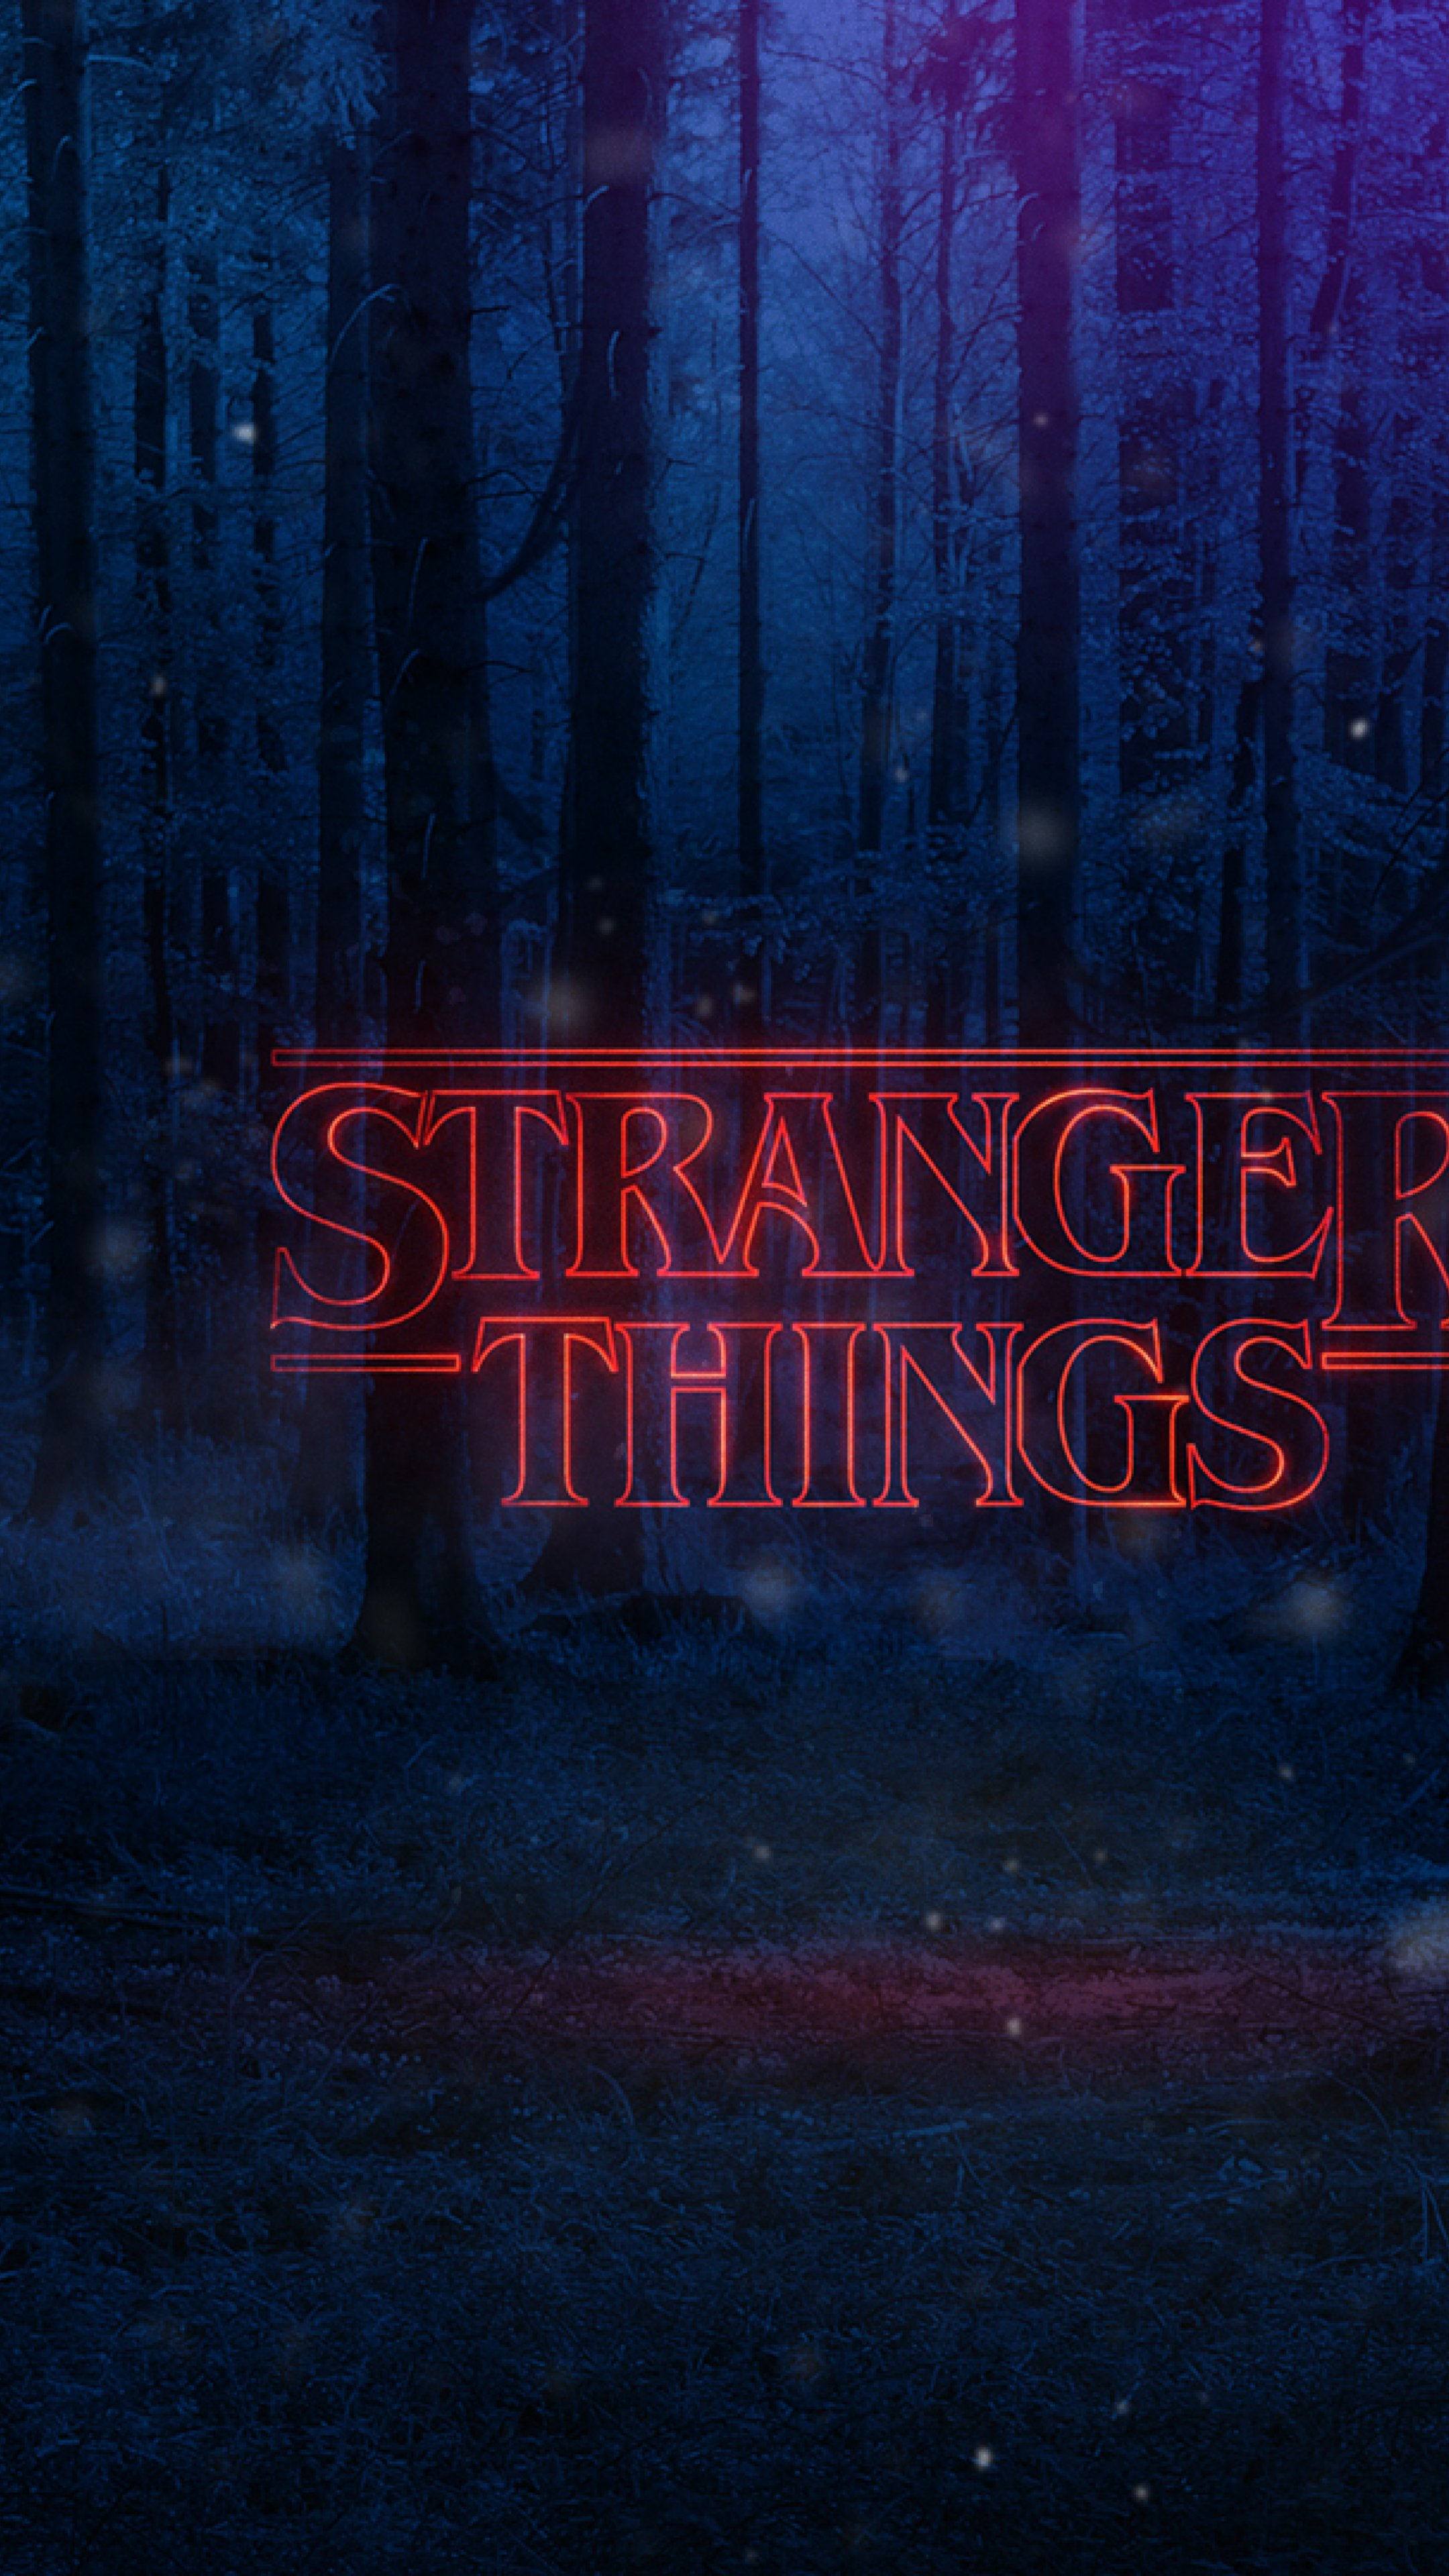 Stranger Things Text Poster Full HD Wallpaper 2160x3840